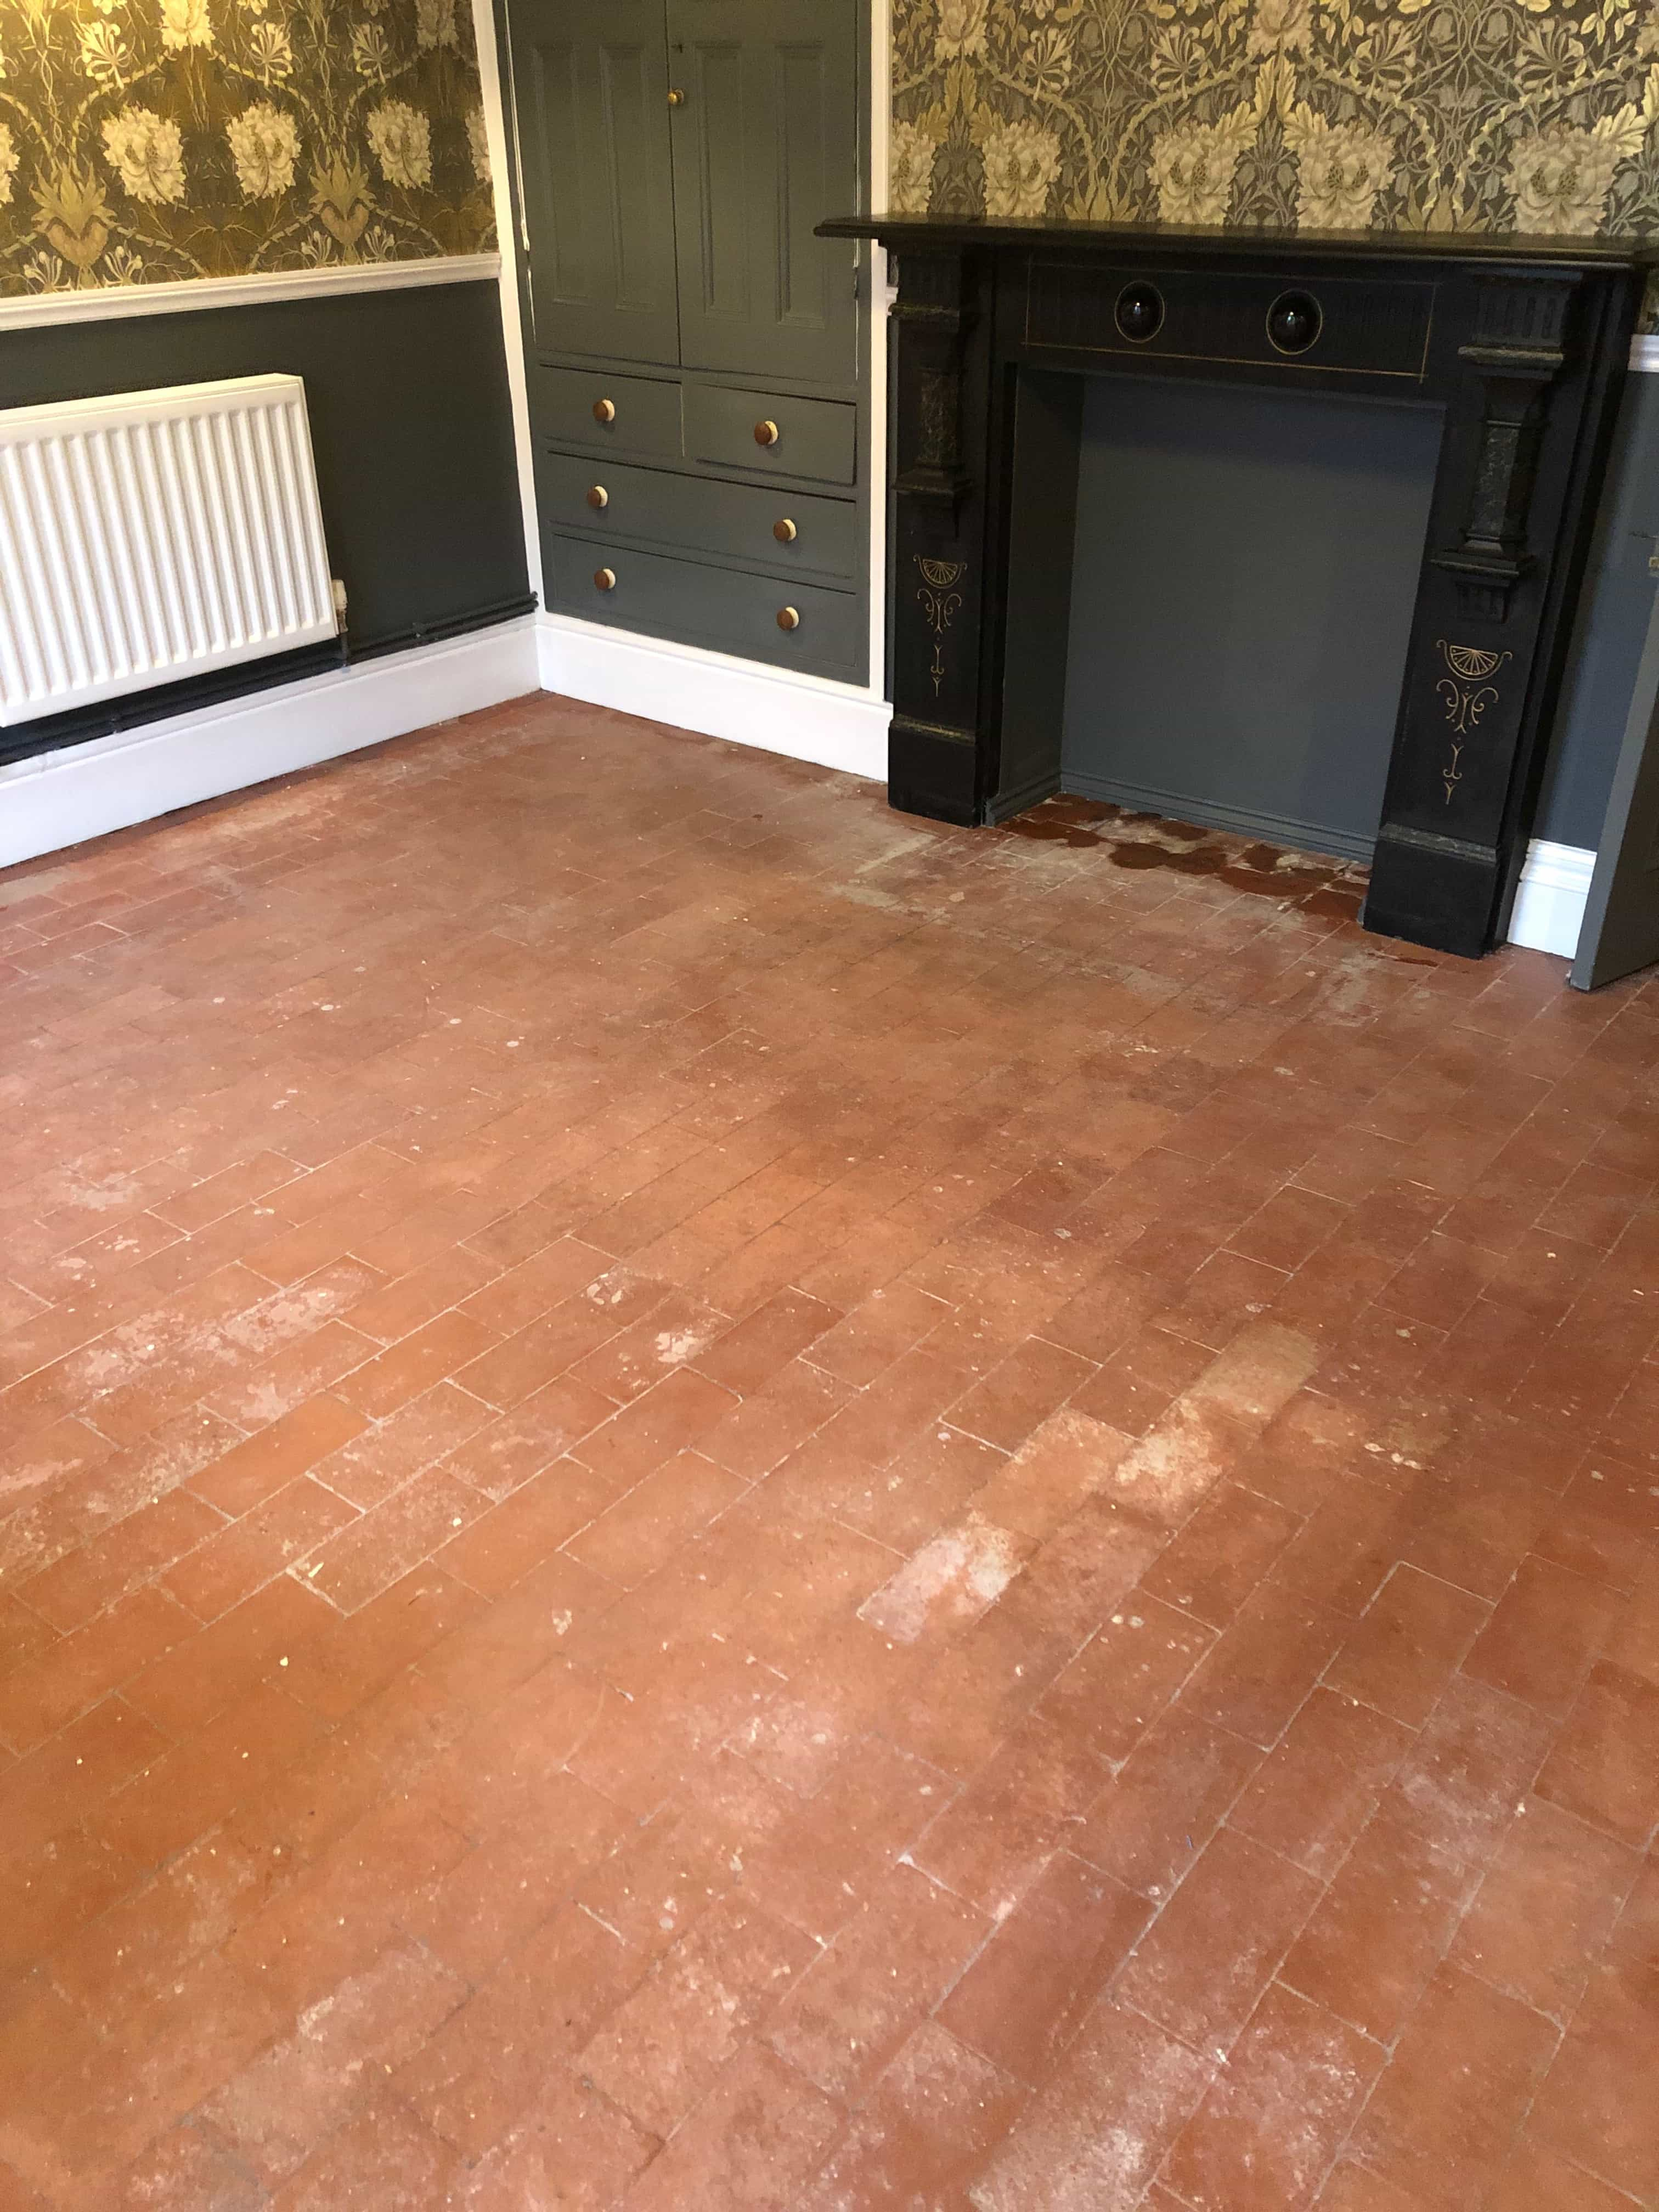 Salt Damaged Quarry Tiled Floor Before Renovation Hartlebury